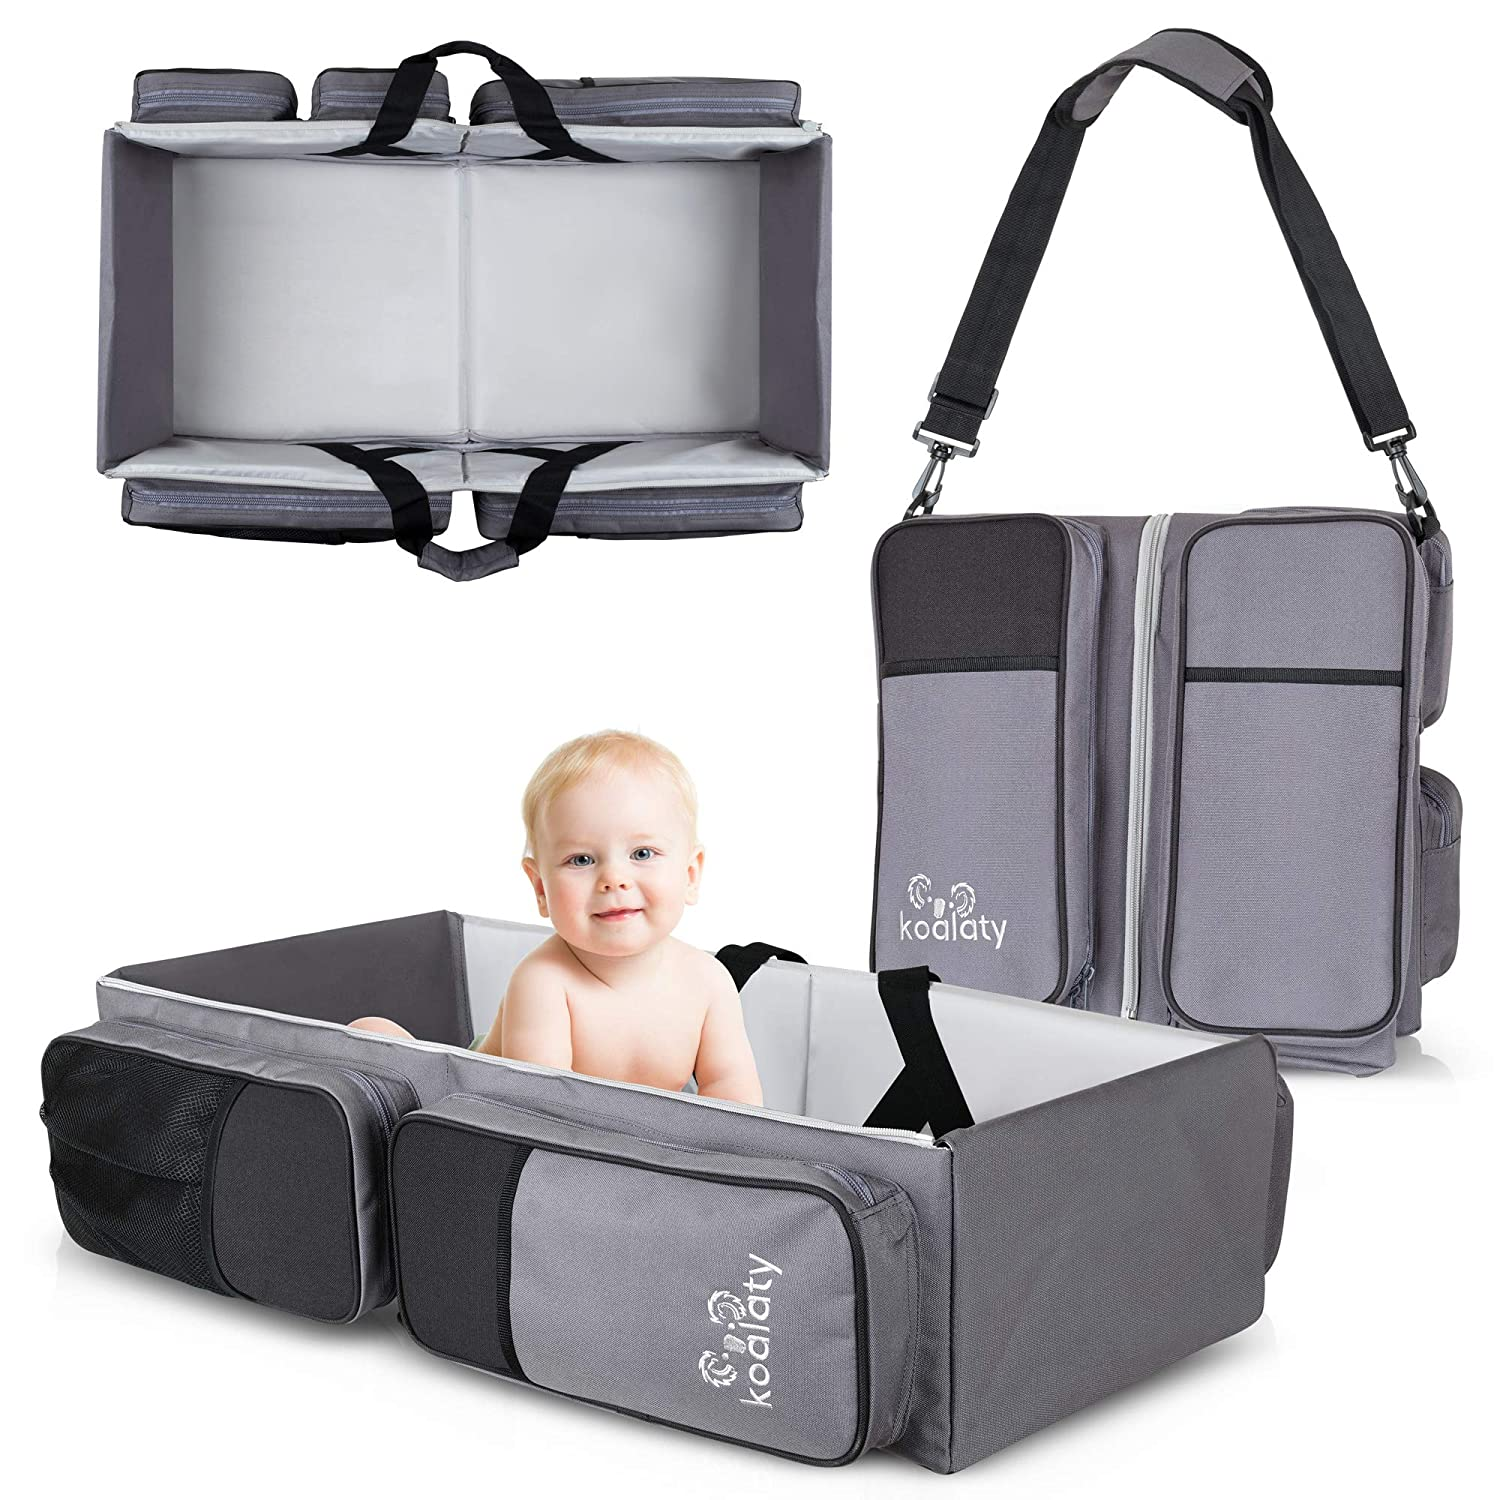 Koalaty 3-in-1 Universal Baby Travel Bag, Diaper Bag, Changing Station, Portable Bassinet Crib- 7.5x13x29 Inches, for Infants and Newborns. Registry Gift, Shower Gift.